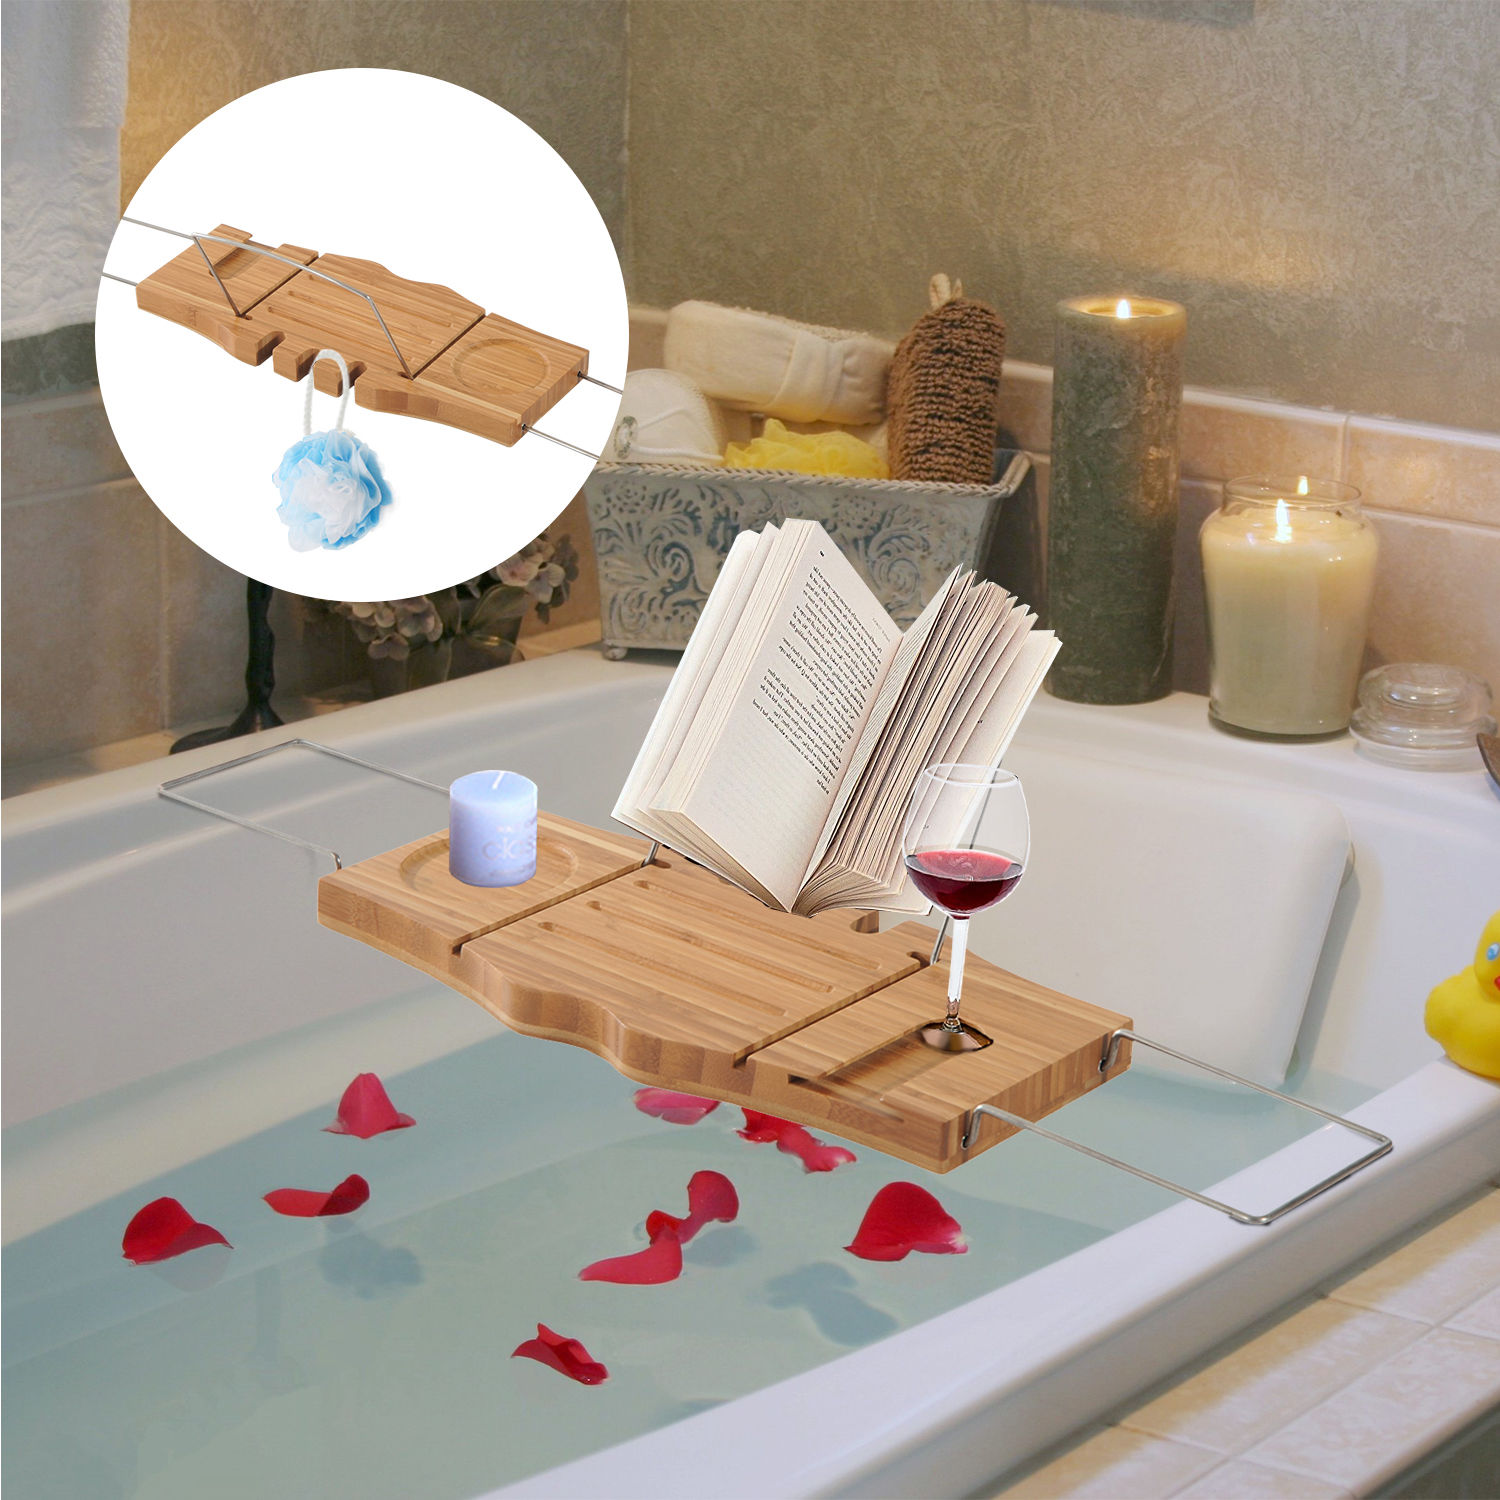 Adjustable Bamboo Bathtub Rack Shelf Caddy Tray Wine Holder Book ...